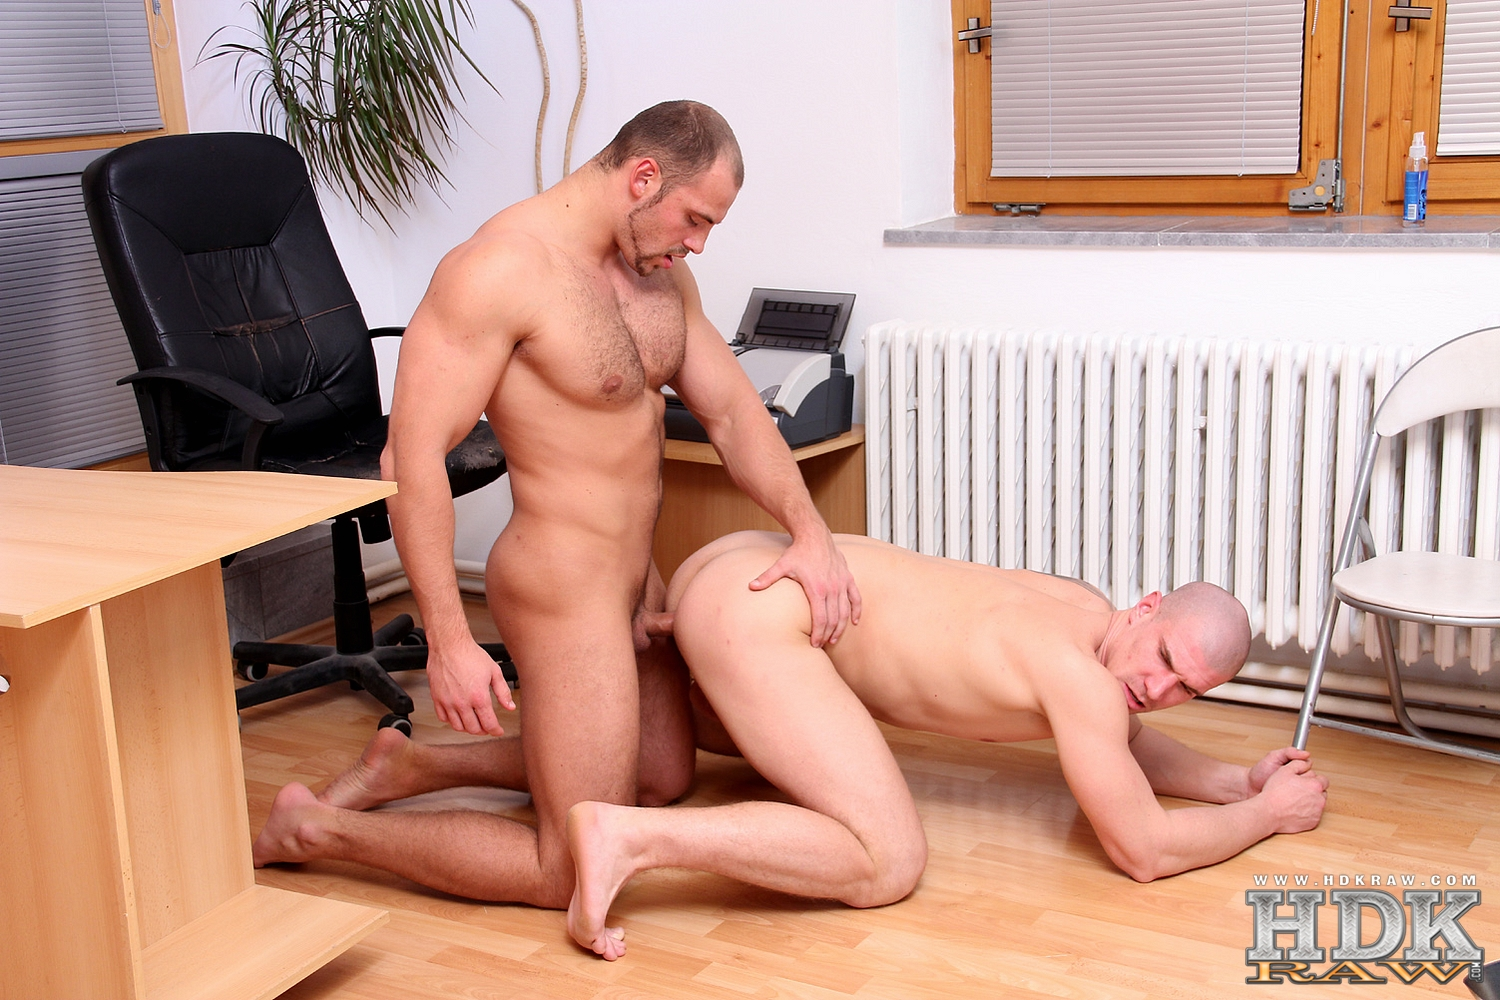 HDK-Raw-Creamin-Fit-Fuckers-Tomm-Max-Born-Muscle-Bareback-Amateur-Gay-Porn-01 Built Hairy Muscle Bear Fucks His Smooth Muscle Buddy Raw